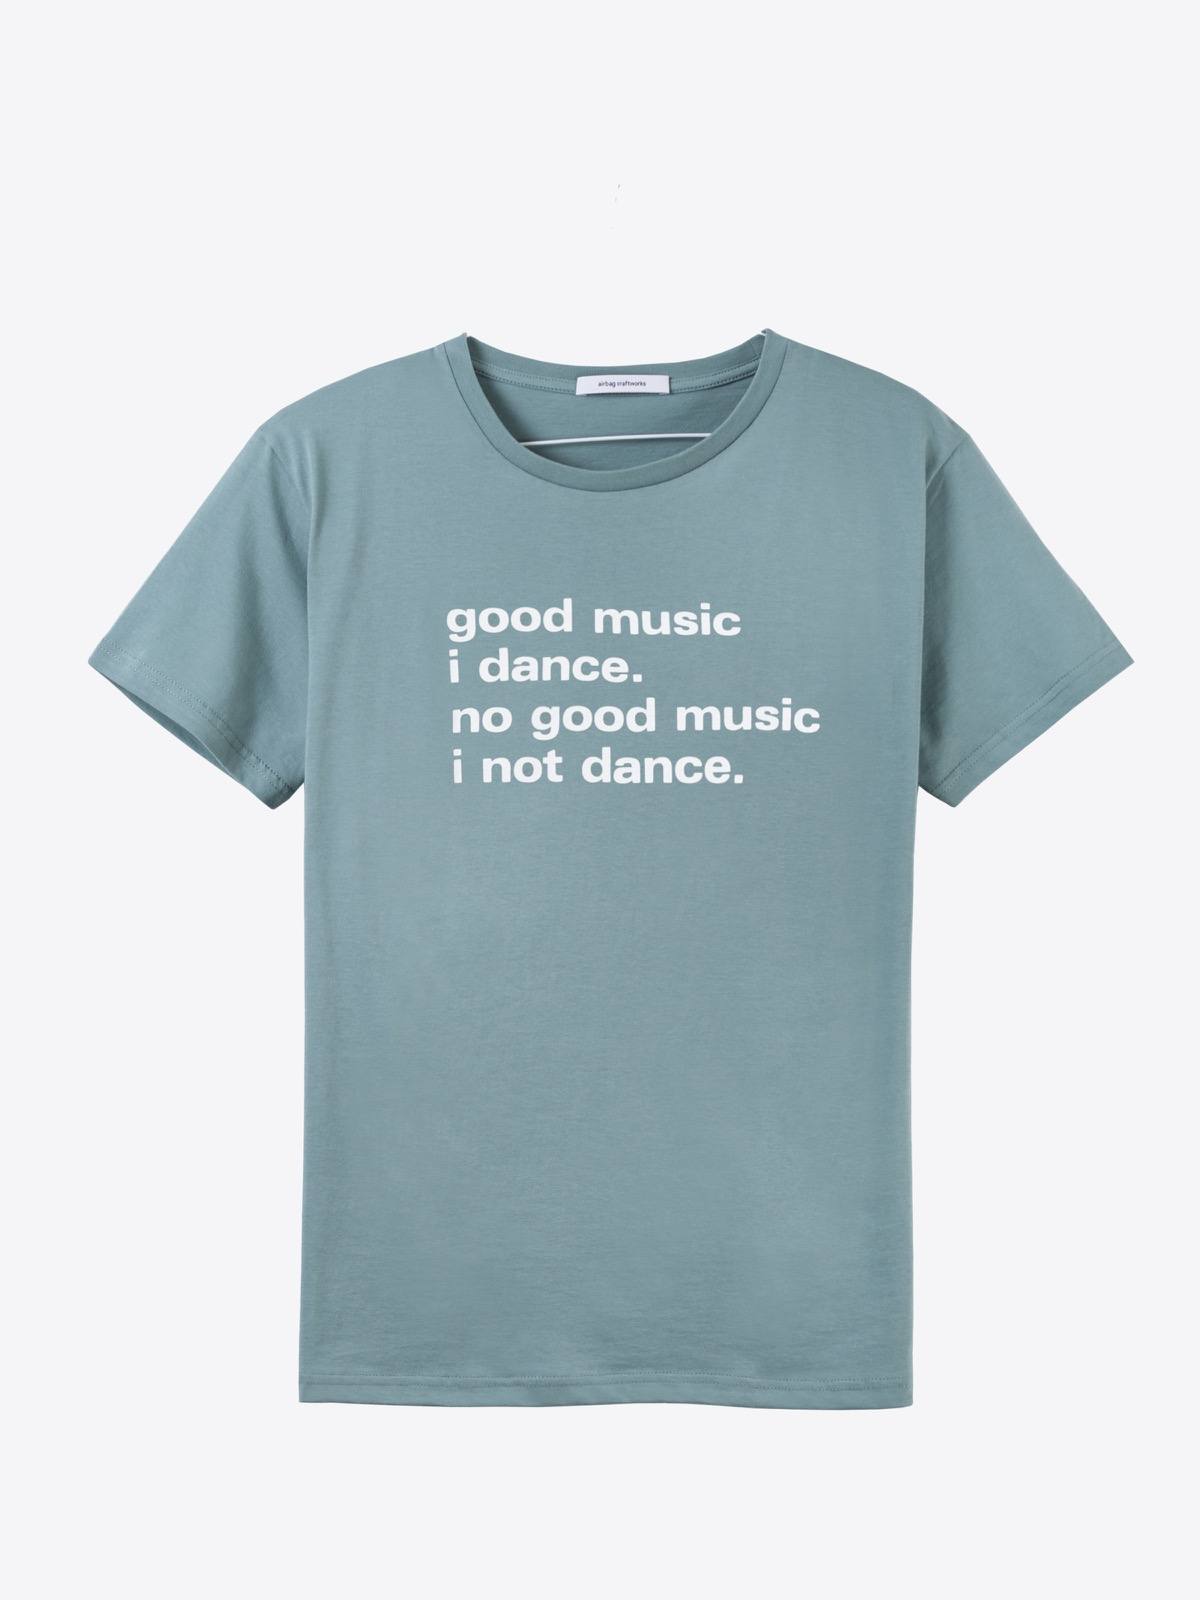 airbag craftworks good music i dance | mint grey